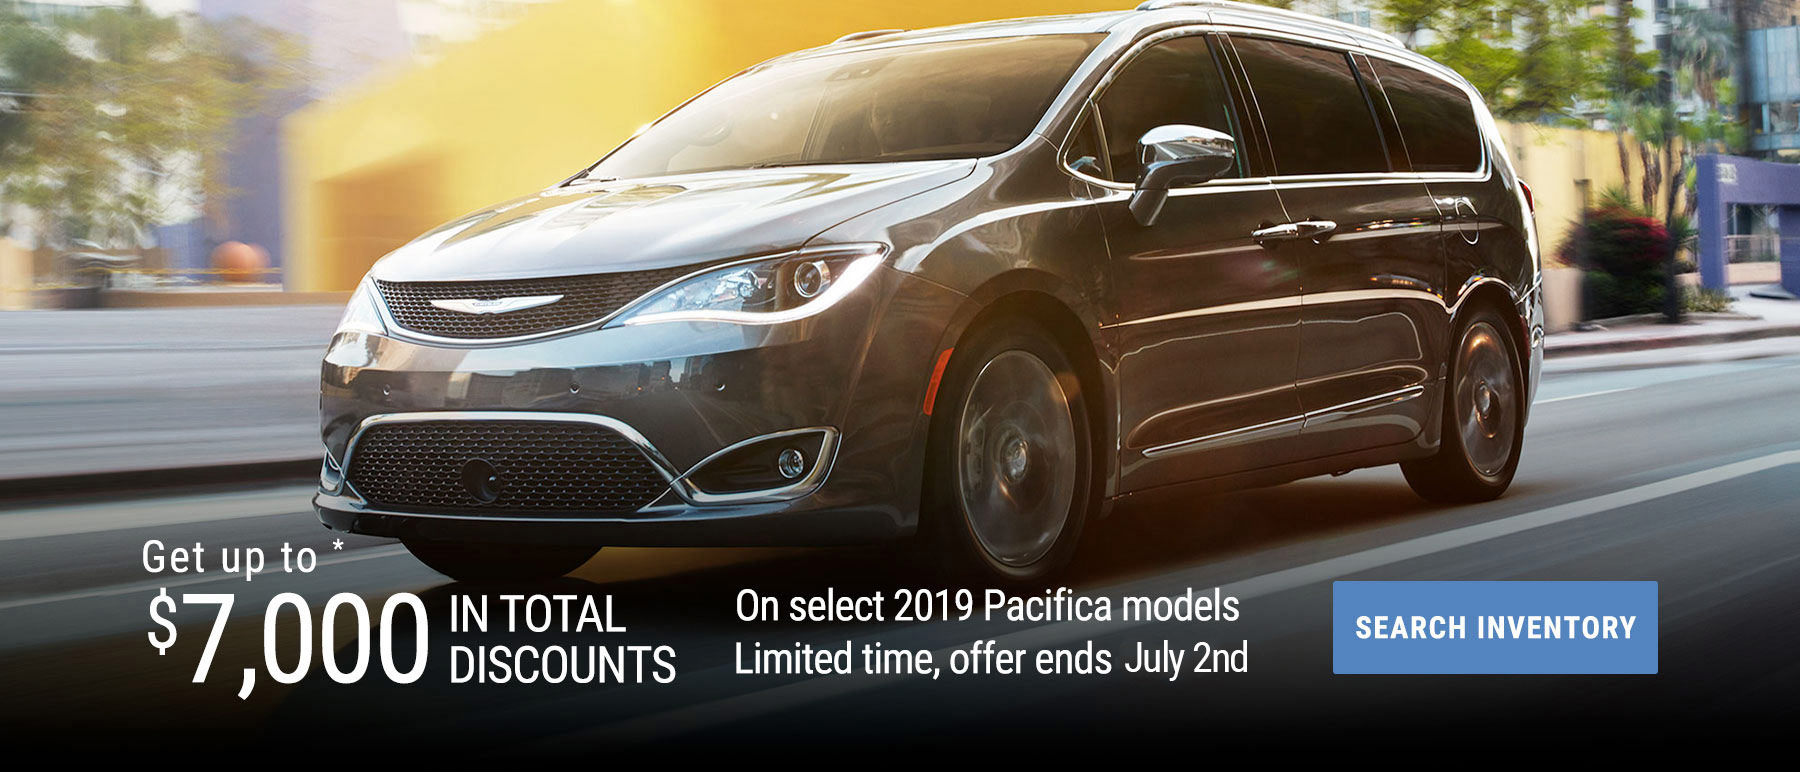 Chrysler June 2019 OEM Offer